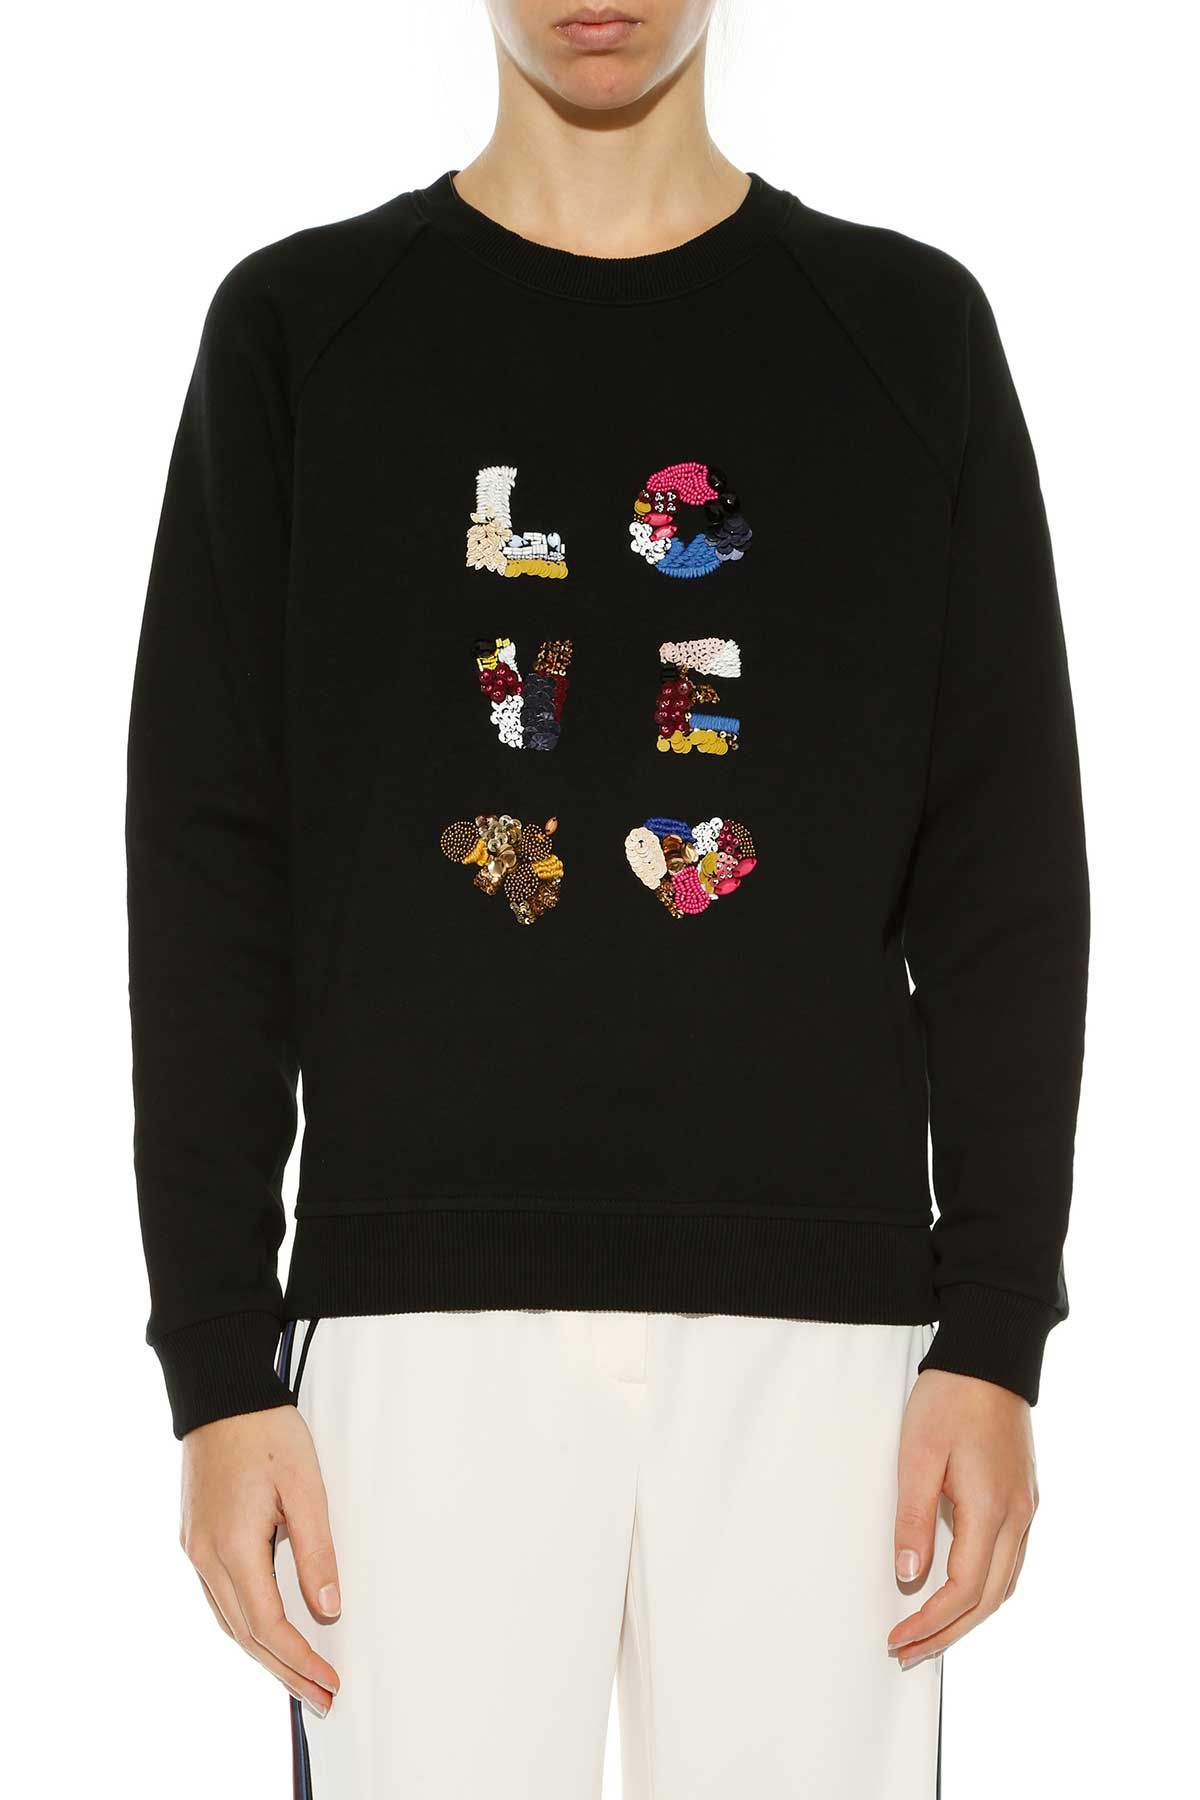 Tory Burch Love Embroidered Sweatshirt